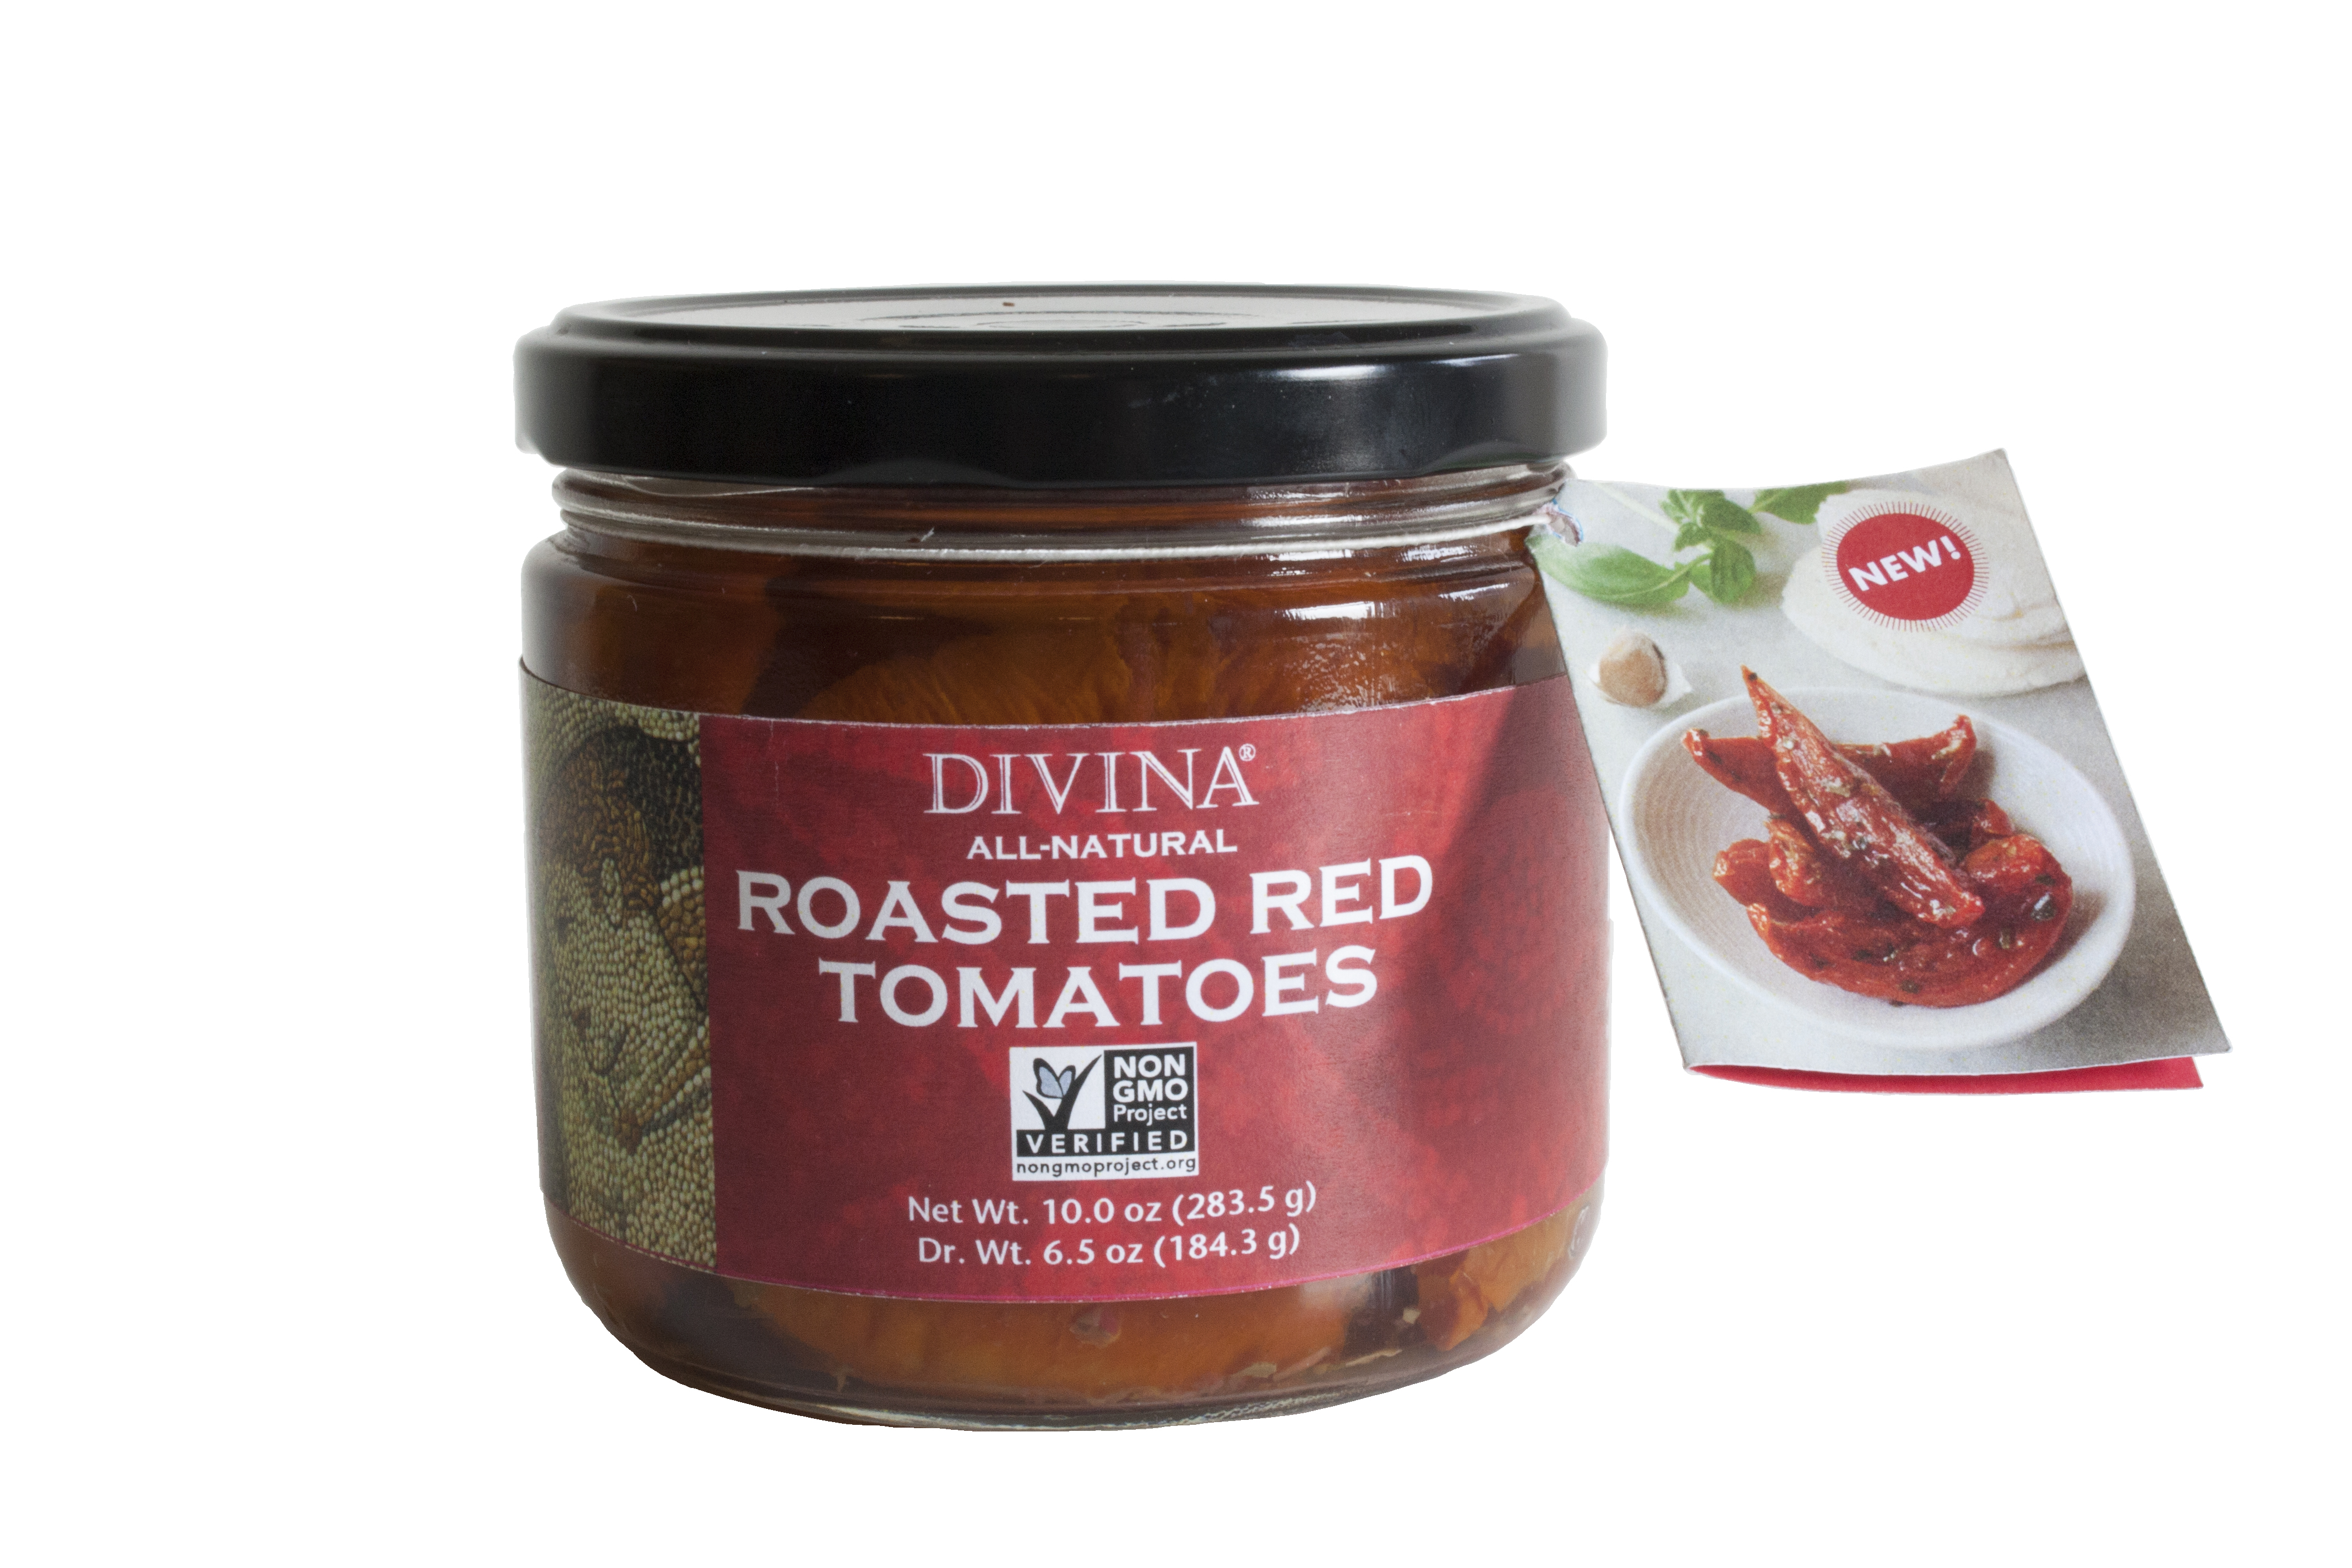 Divina: Roasted Red Tomatoes